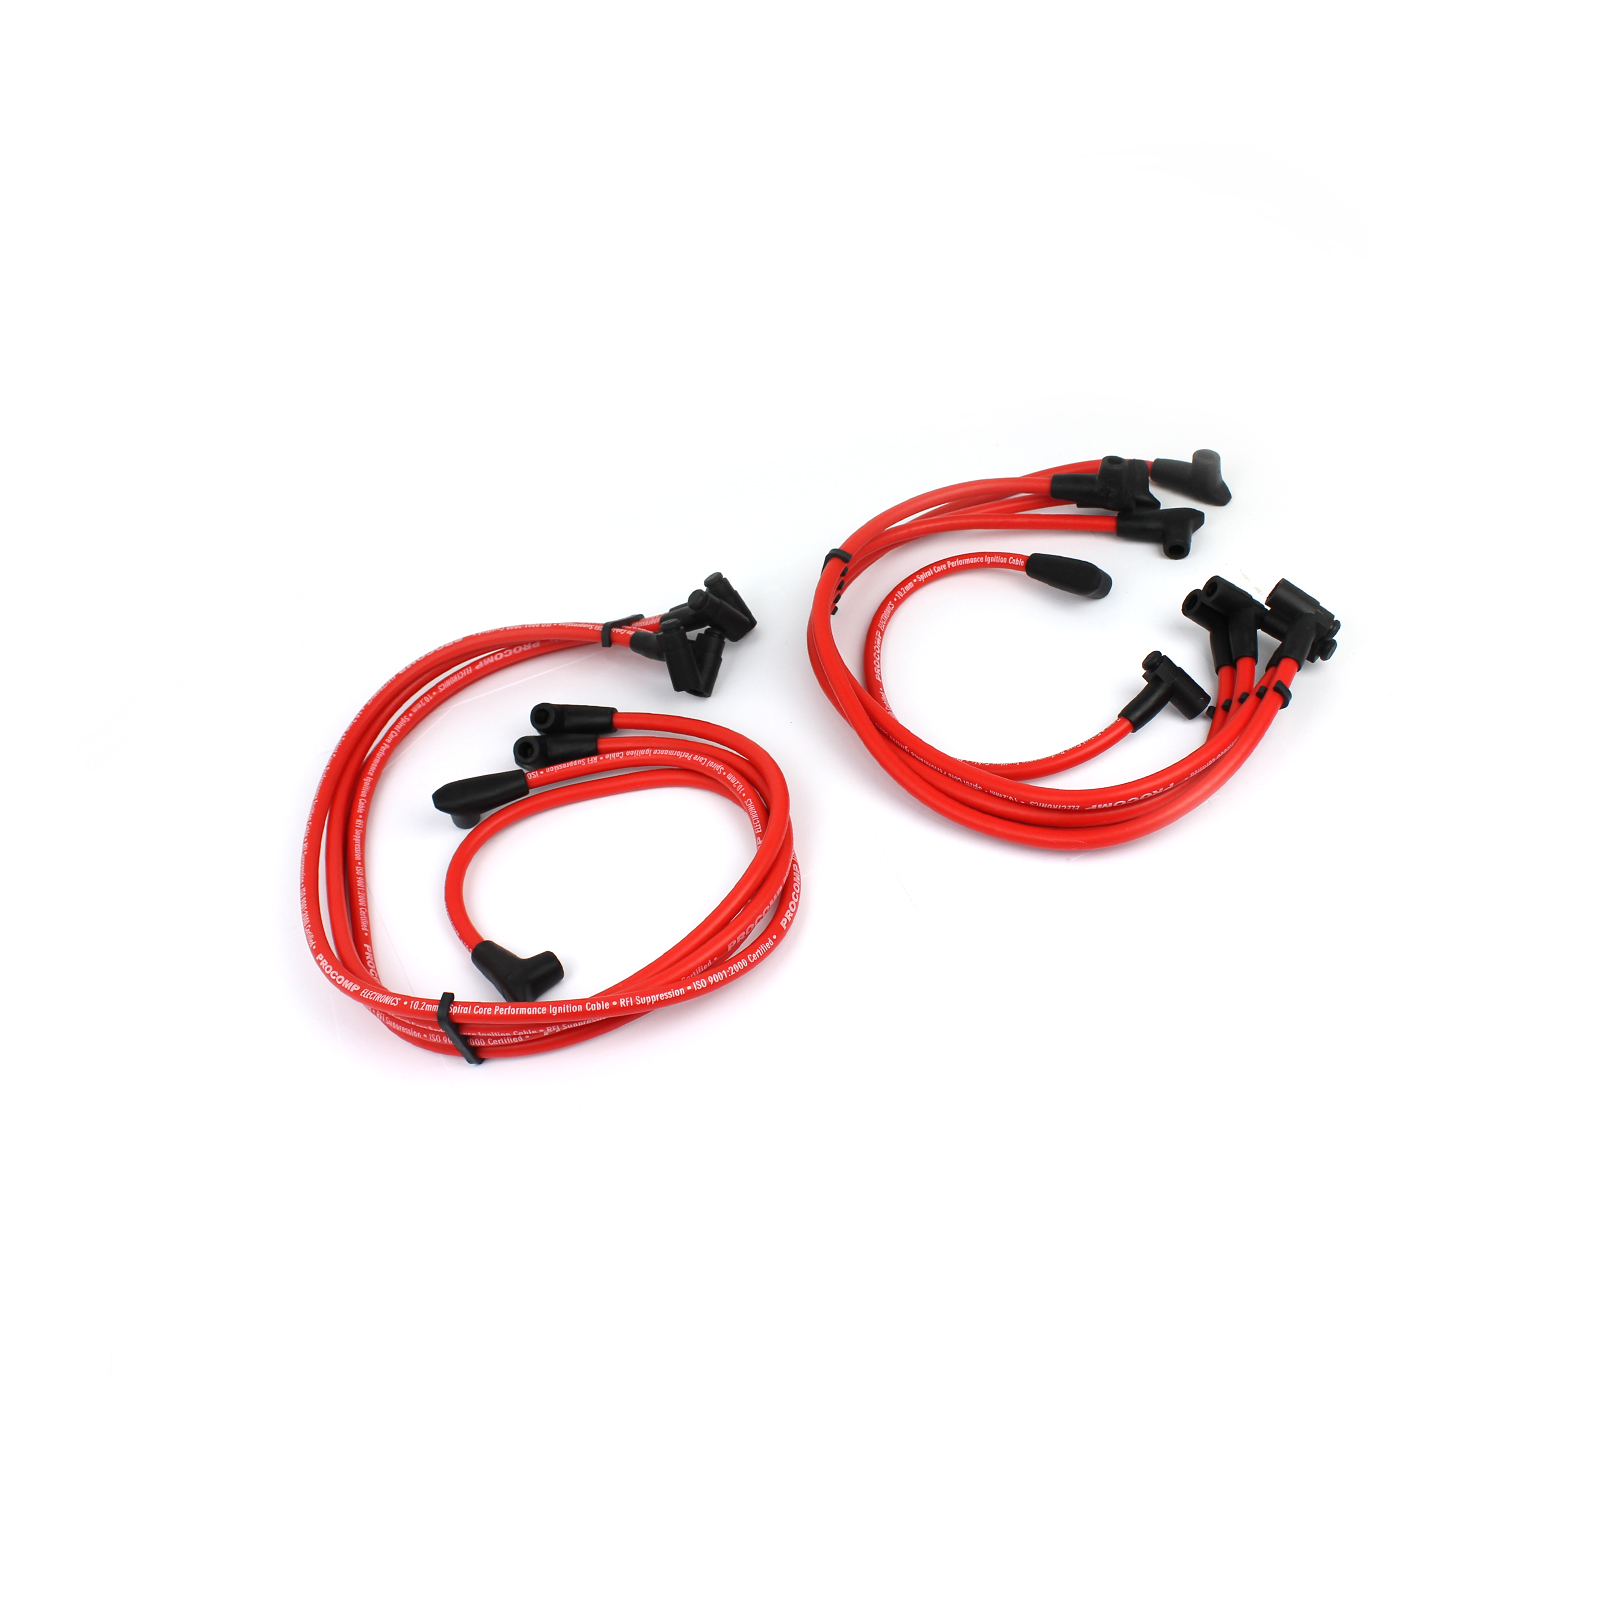 Universal 90 Deg to 90 Deg Over Covers Male Red Spark Plug Wires suit Chevy